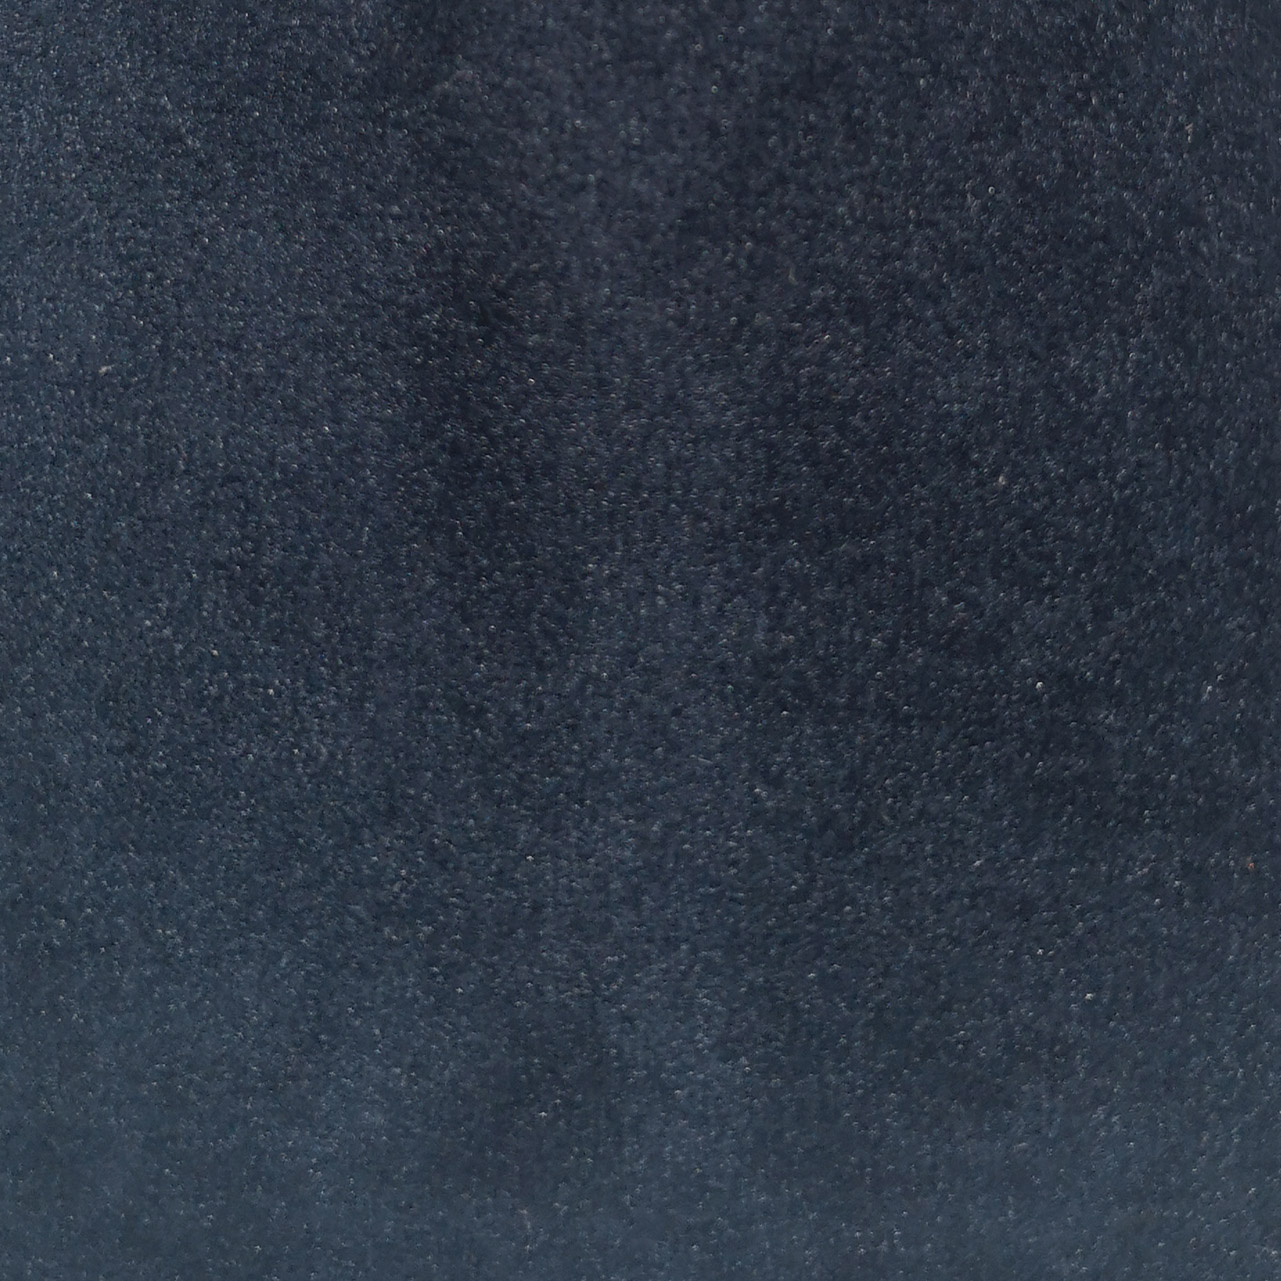 Navy Blue Fabric (Velvet)